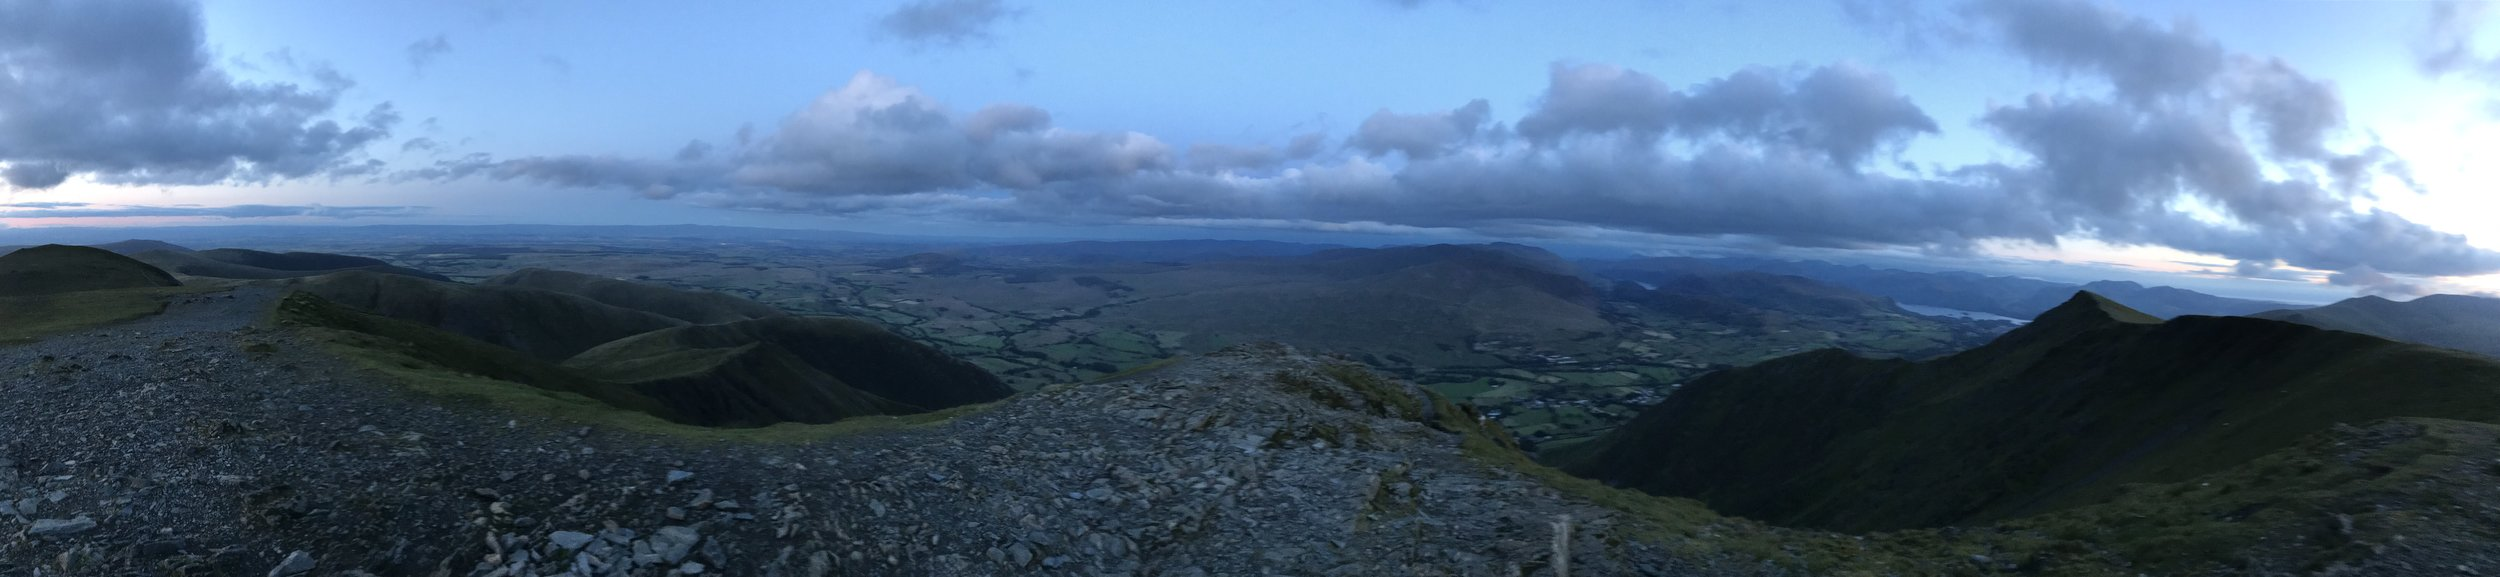 Blencathra summit with Halls Fell Ridge directly ahead and below